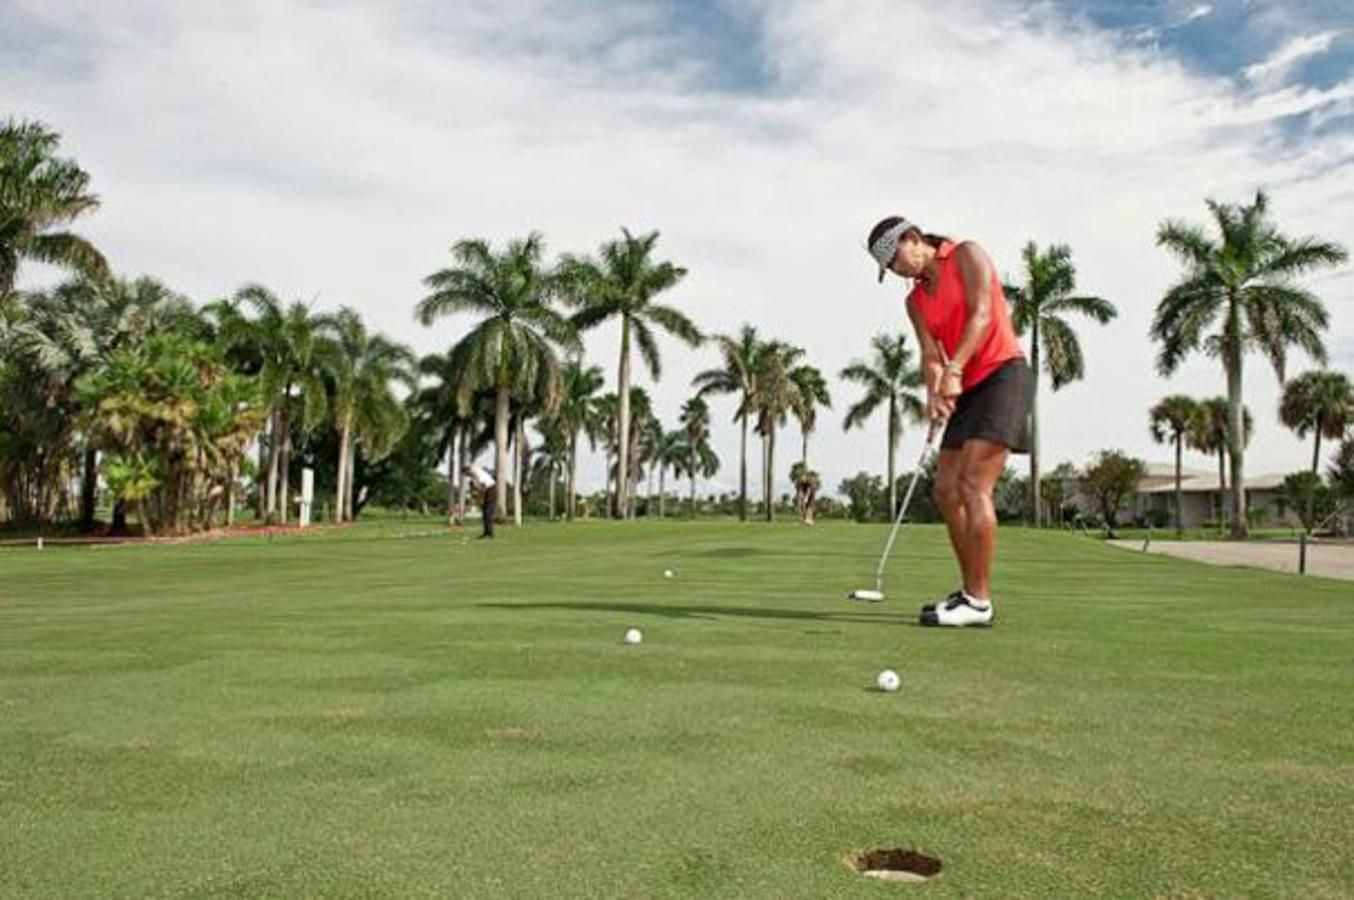 The putting green practice area at Country Club of Miami